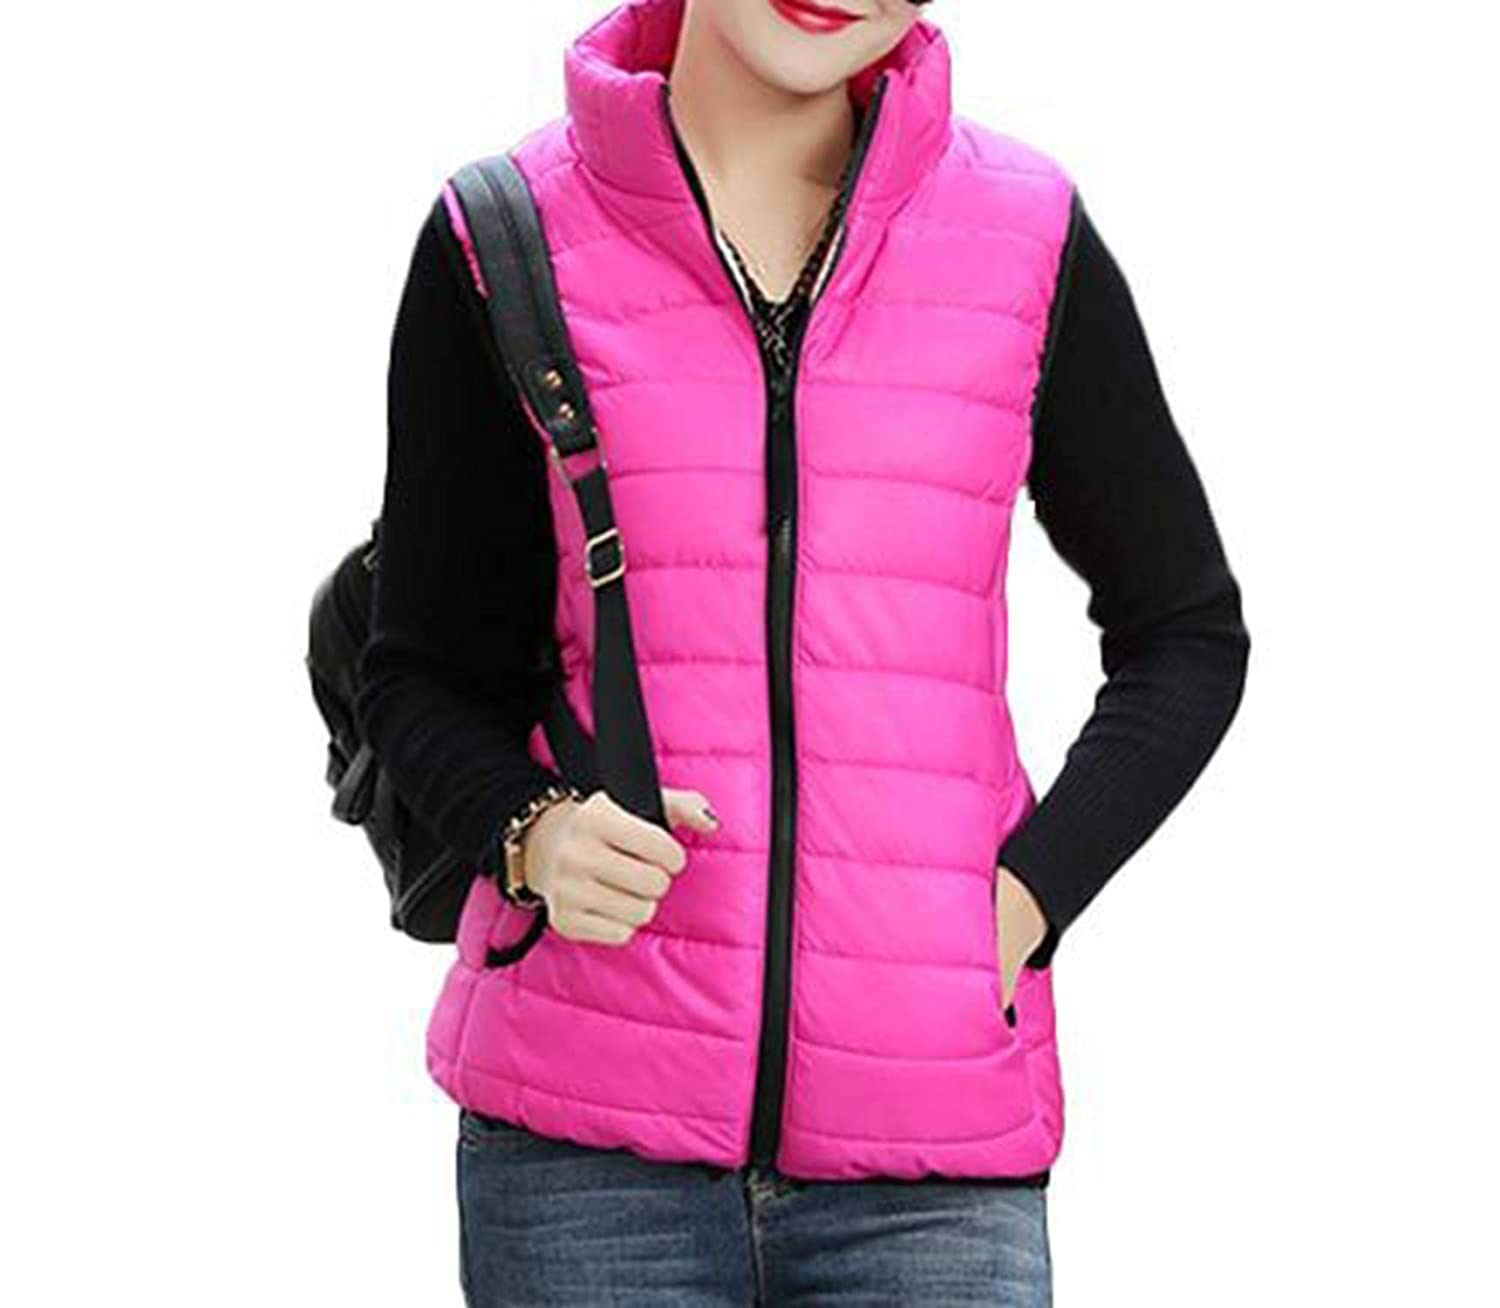 Nelliewins Plus Size Autumn Winter Coat Women Ladies Gilet Feminino Casual Waistcoat Female Sleeveless Cotton Vest Jacket